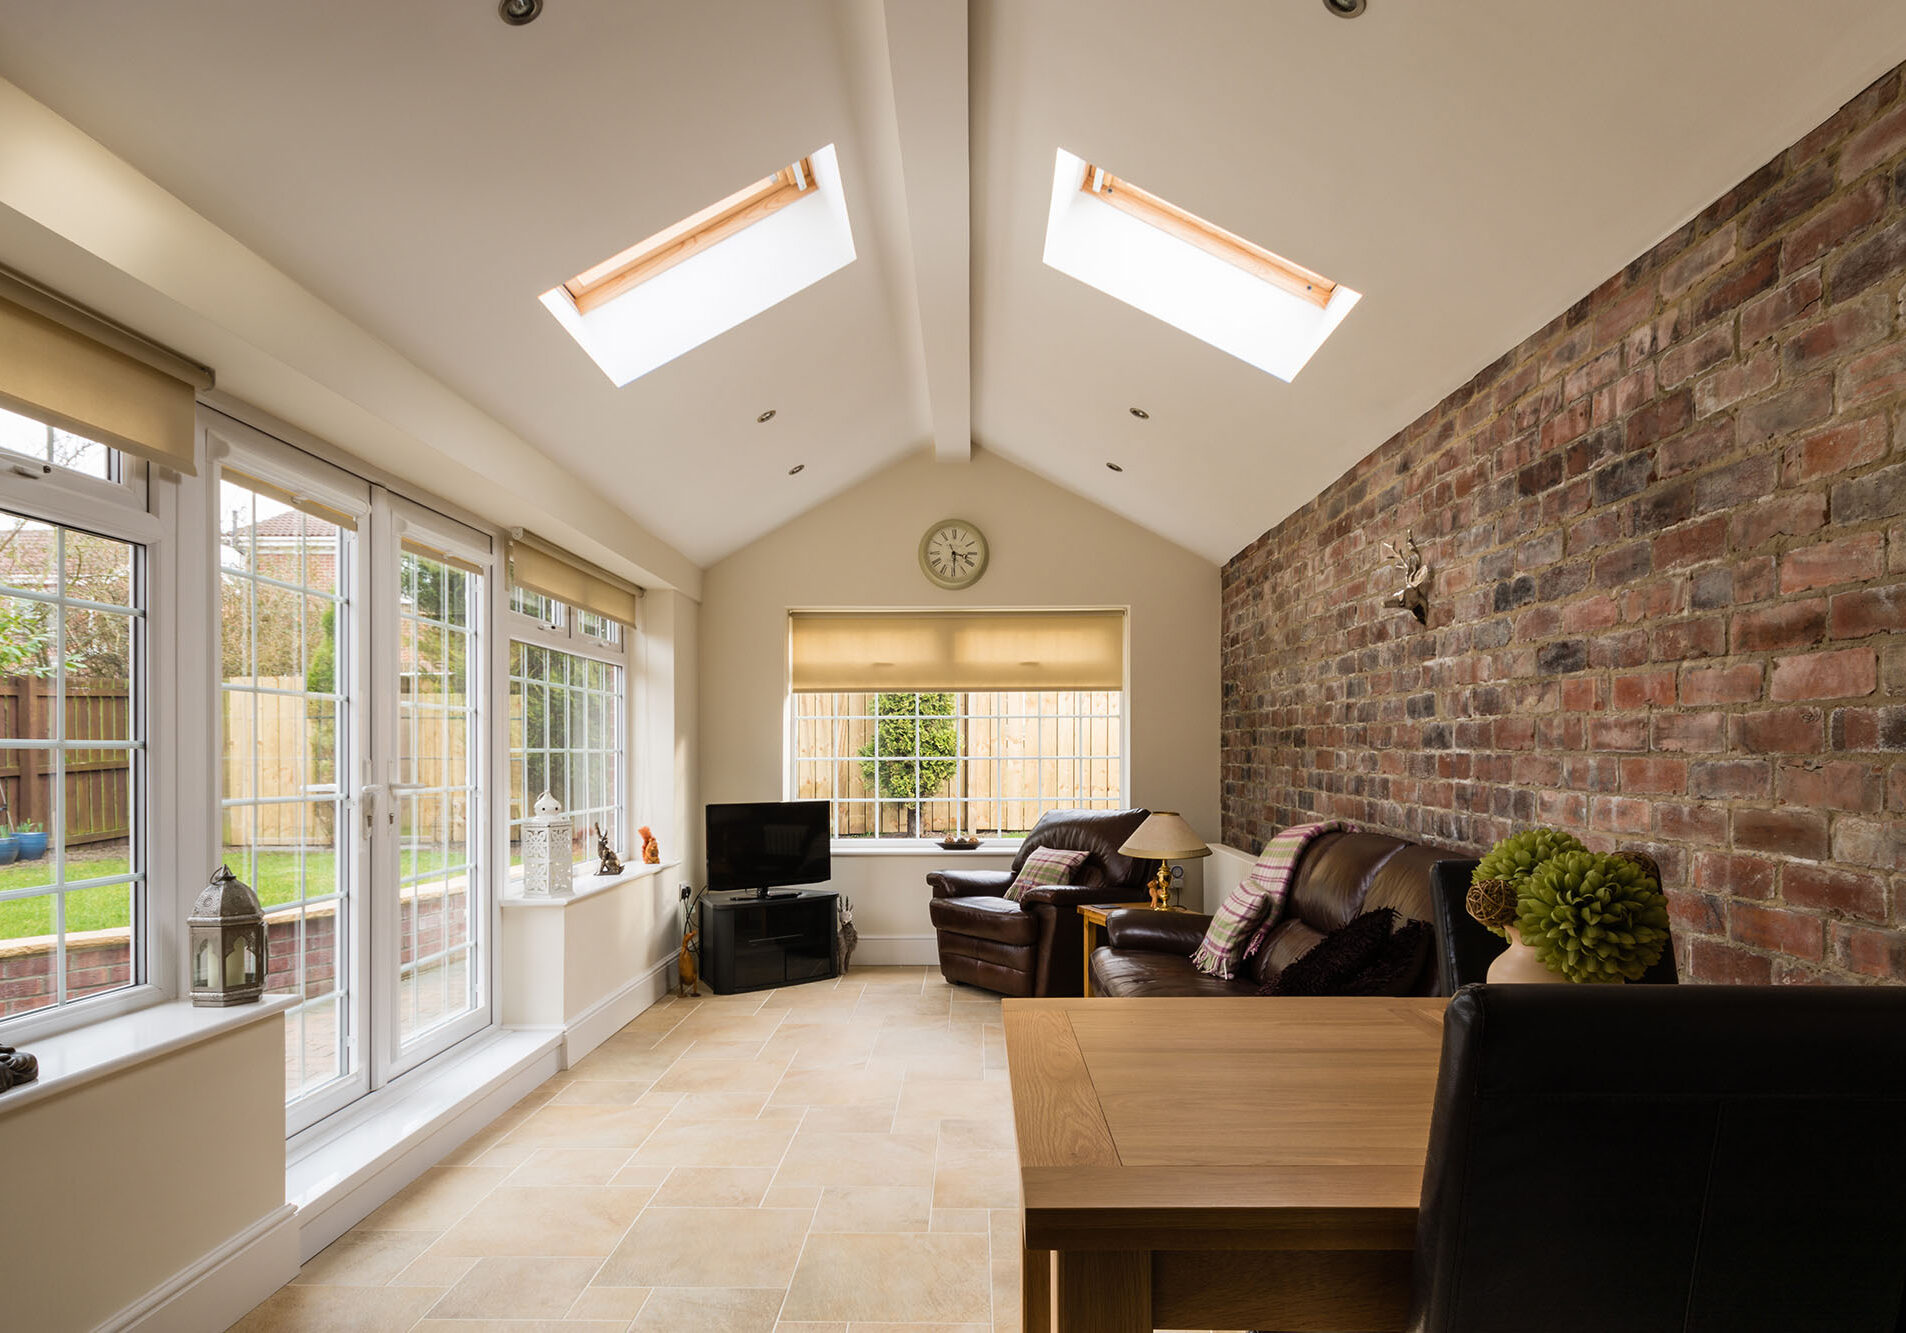 Home Extensions and Refurbishments - Builders North East